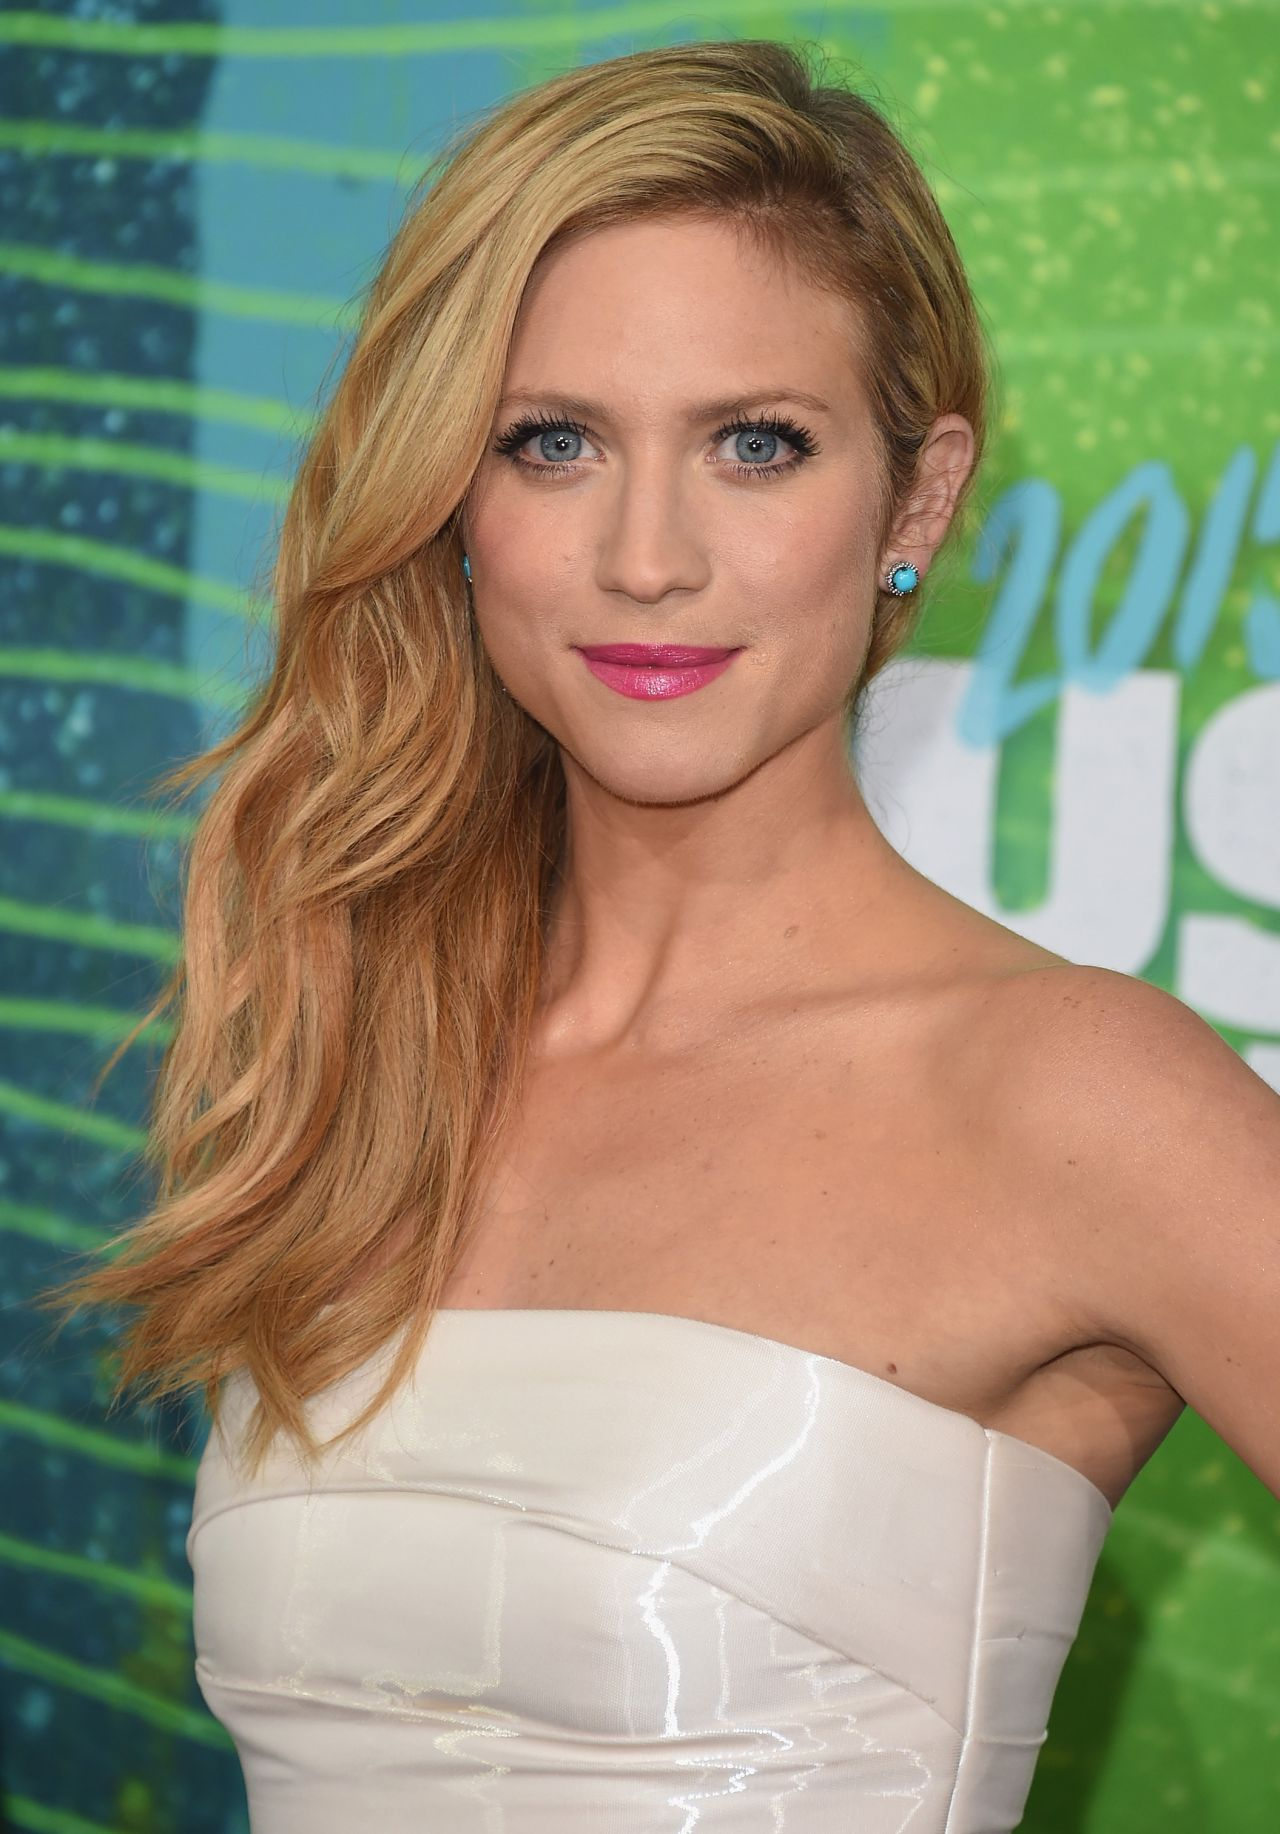 Brittany Snow - 2015 CMT Music Awards in Nashville Brittany Snow